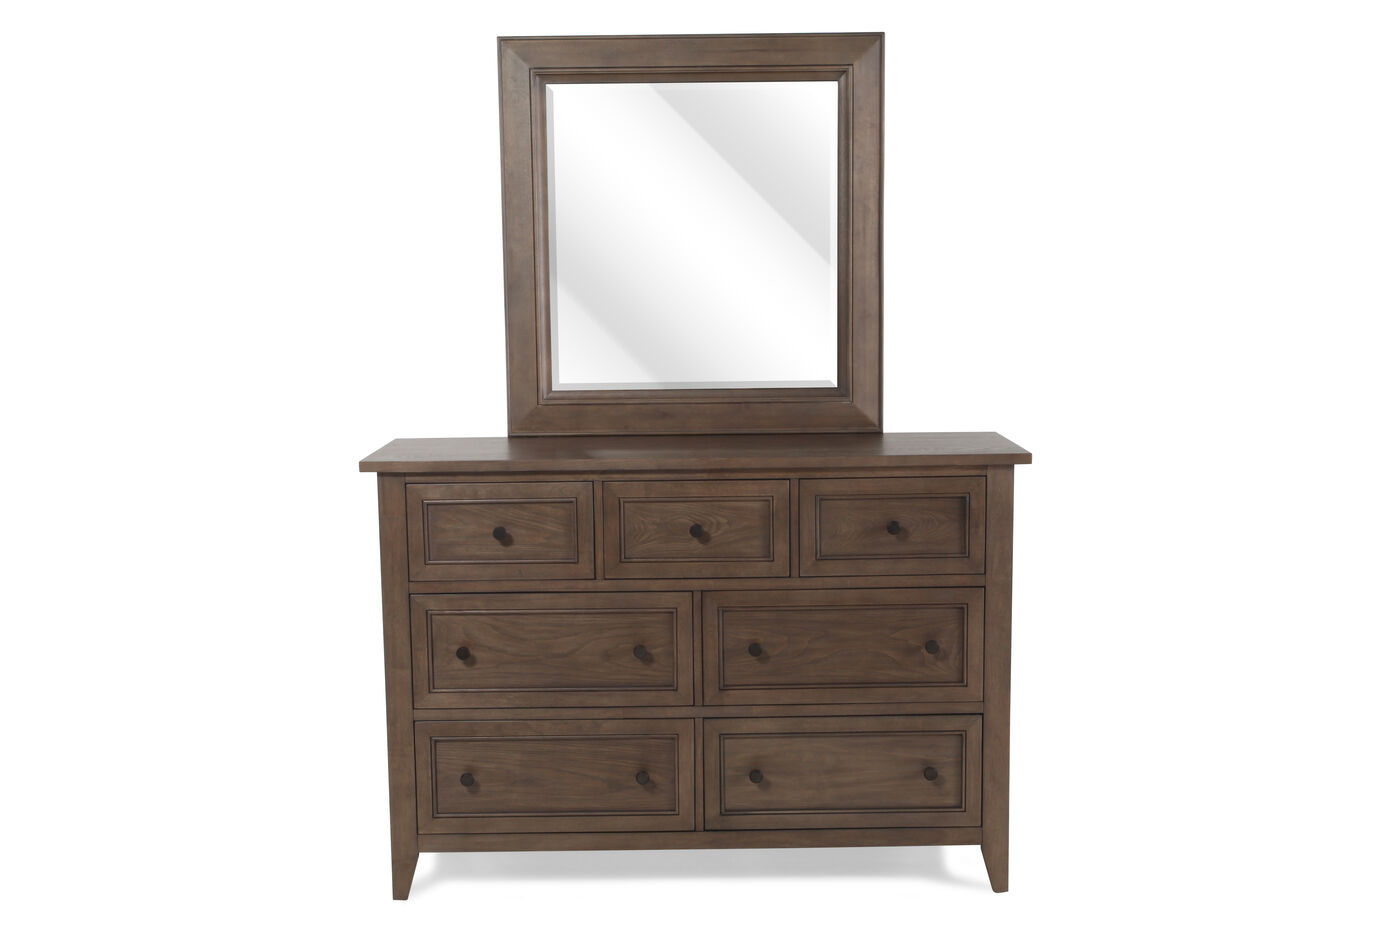 Magnussen Home Talbot Dresser and Mirror Mathis Brothers Furniture